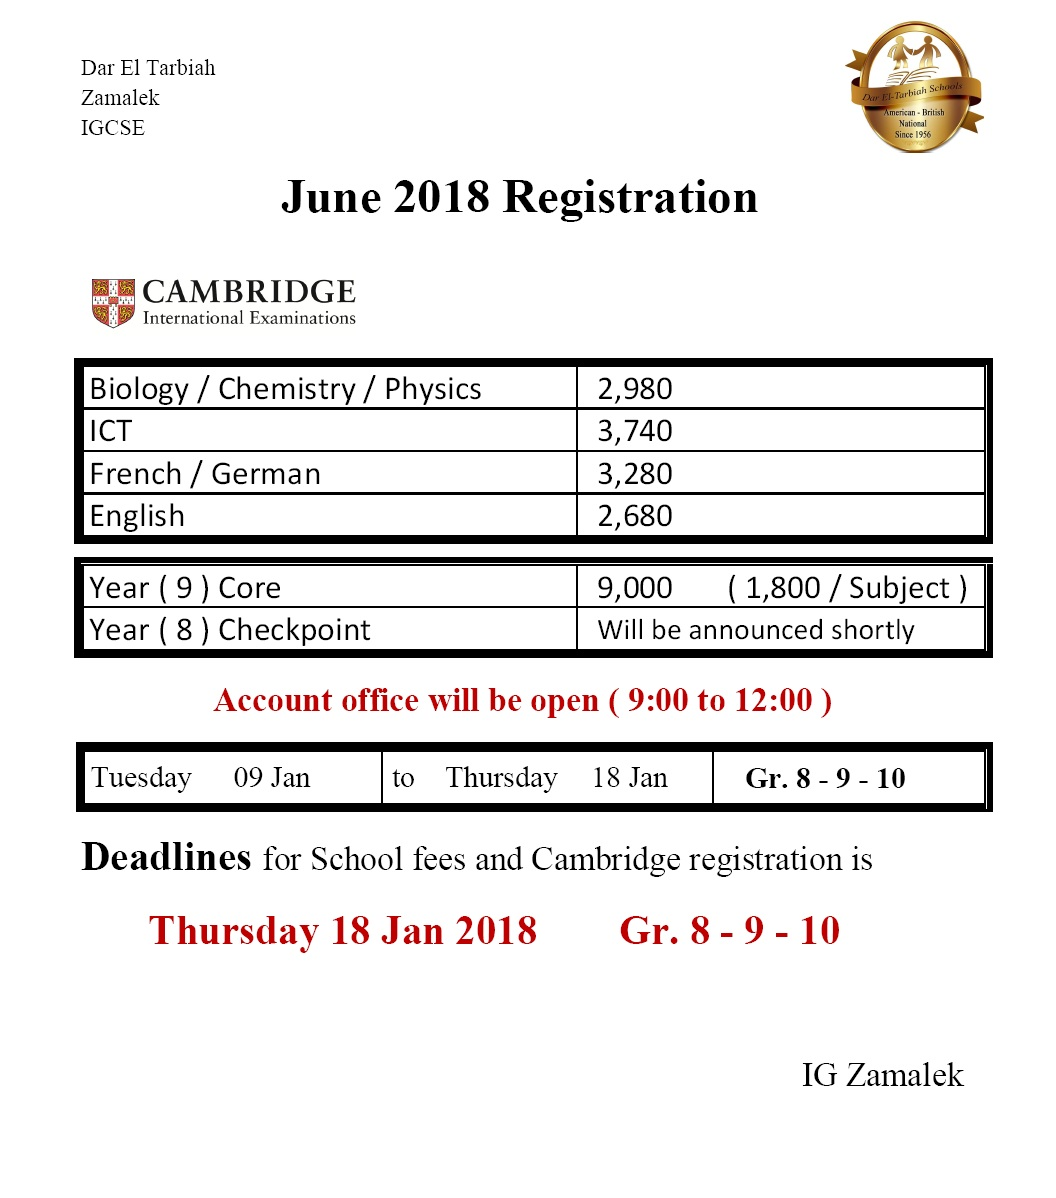 IG Zamalek : Cambridge June 2018 Fees (Gr. 8 - 9 - 10)